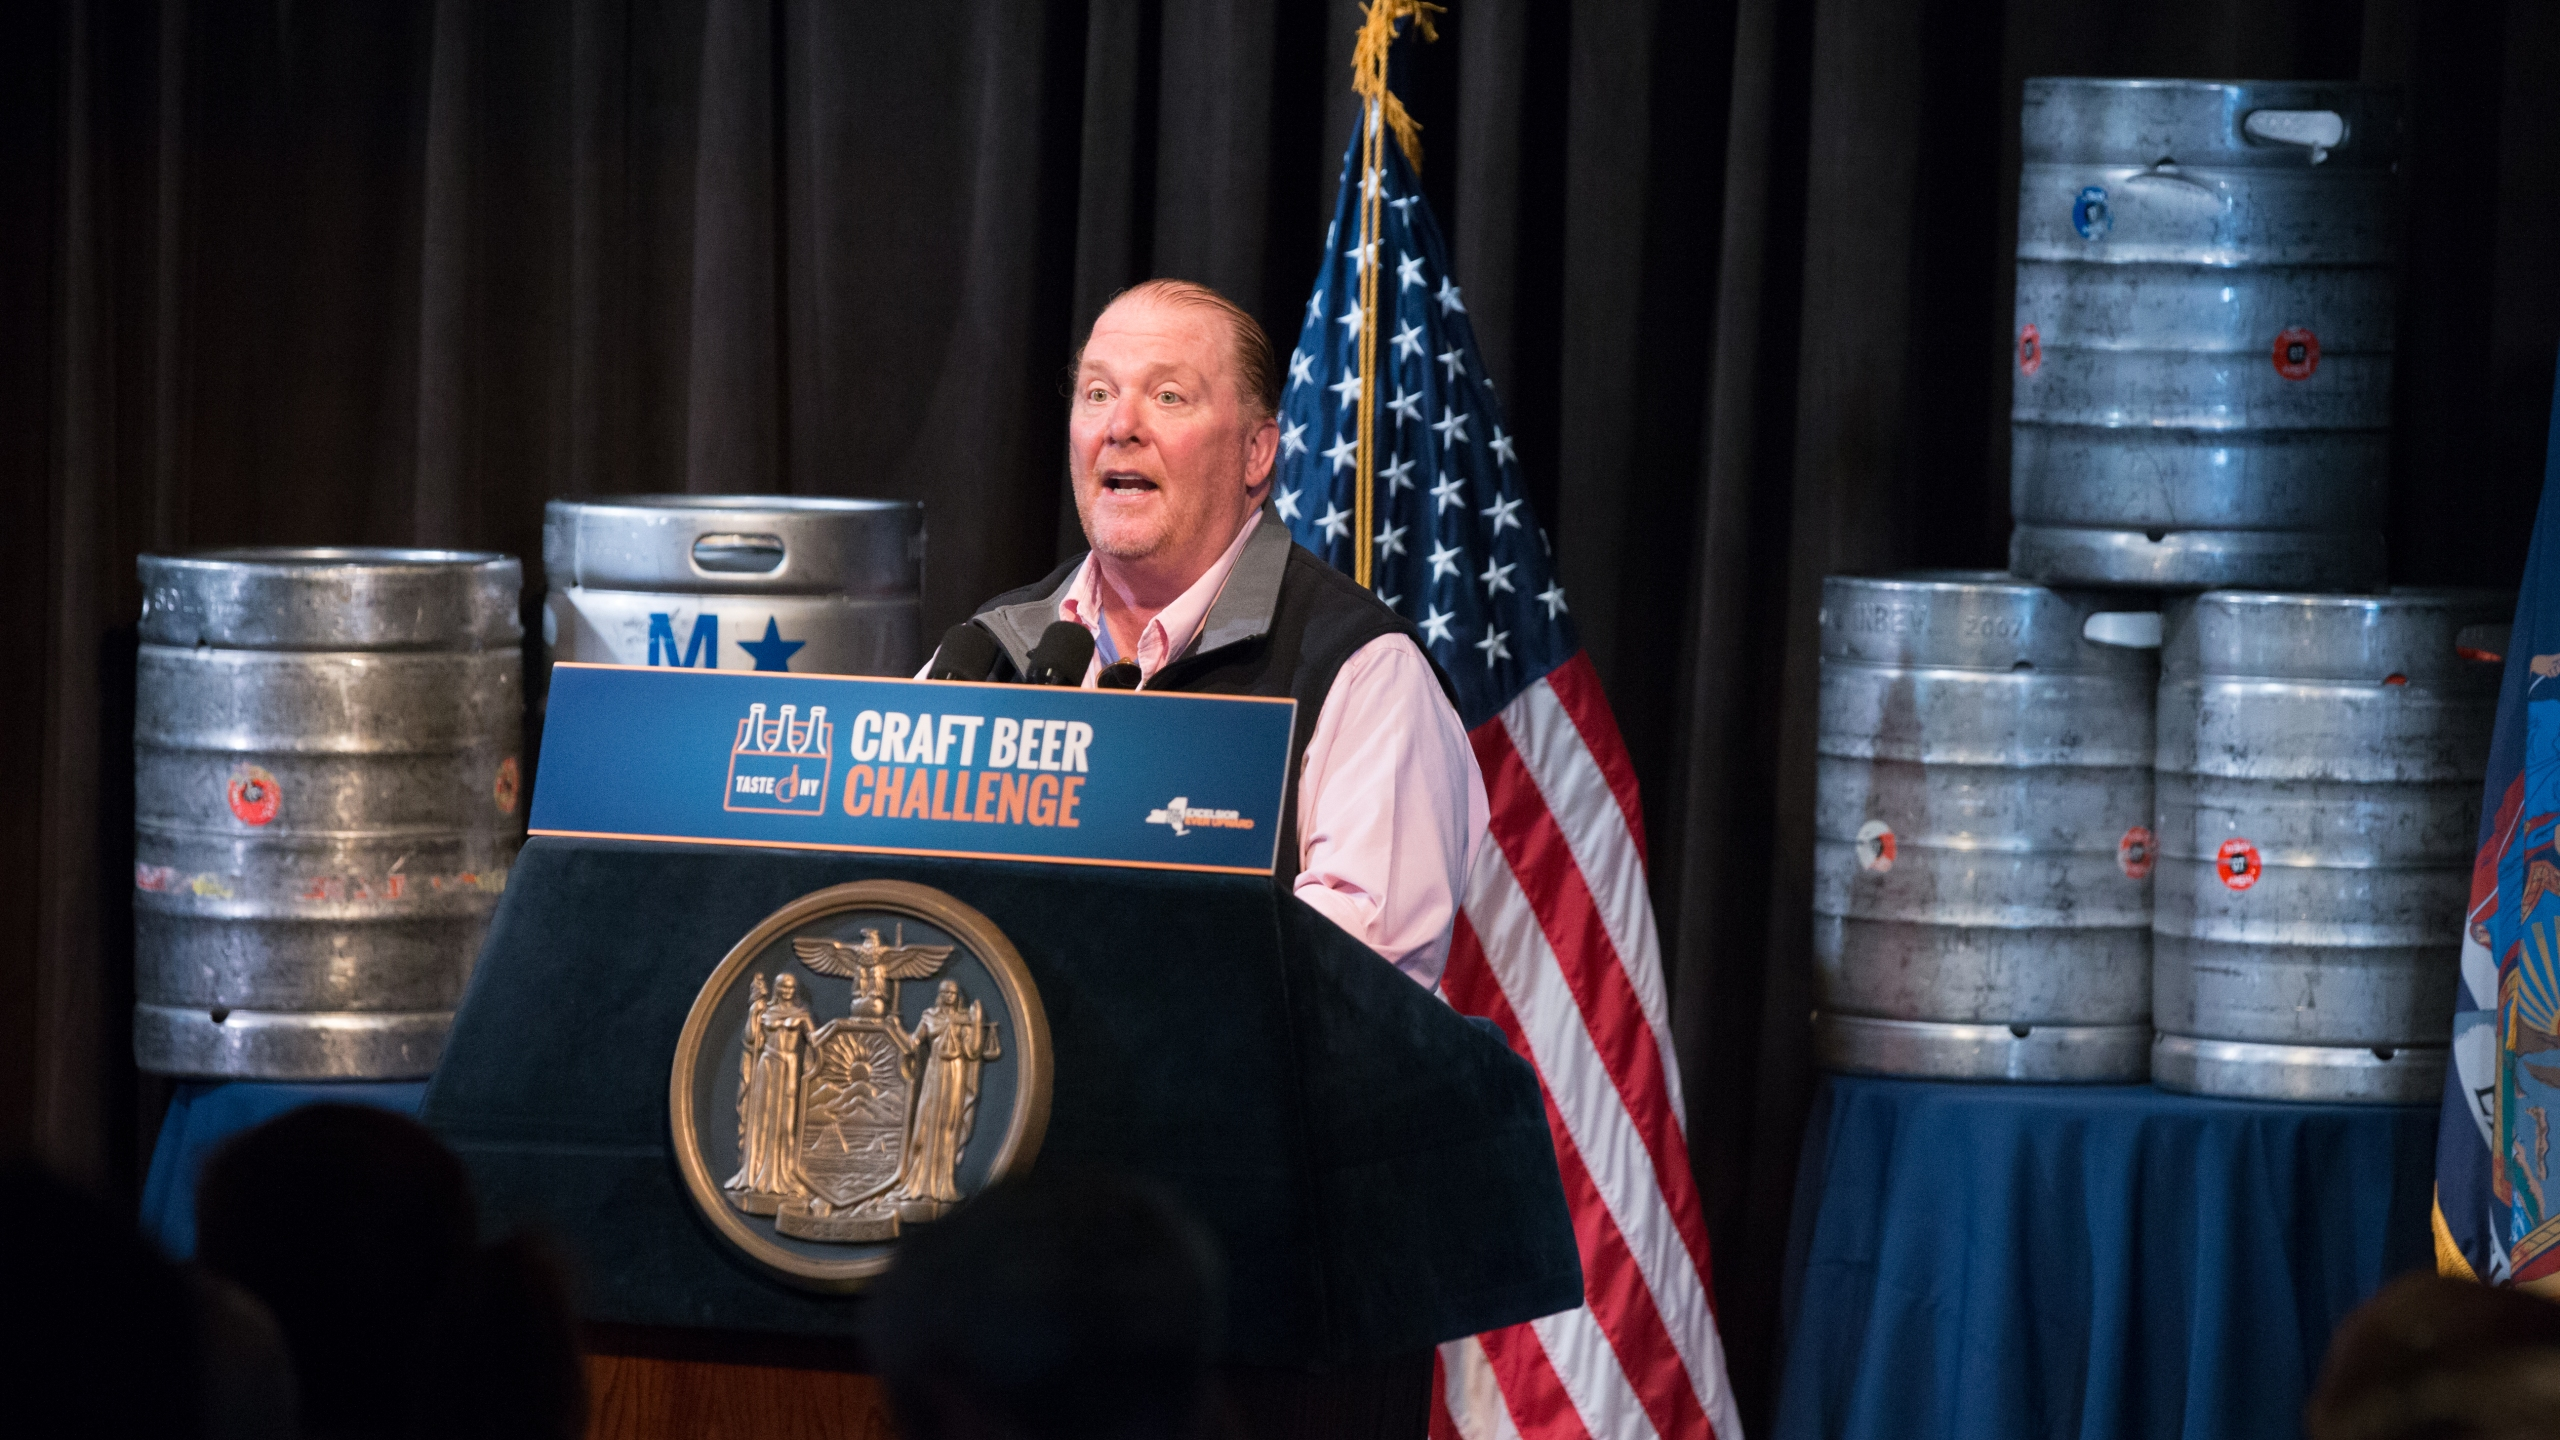 governor-cuomo-hosts-the-taste-ny-inaugural-craft-beer-challenge_33882399764_o_1495076007291.jpg